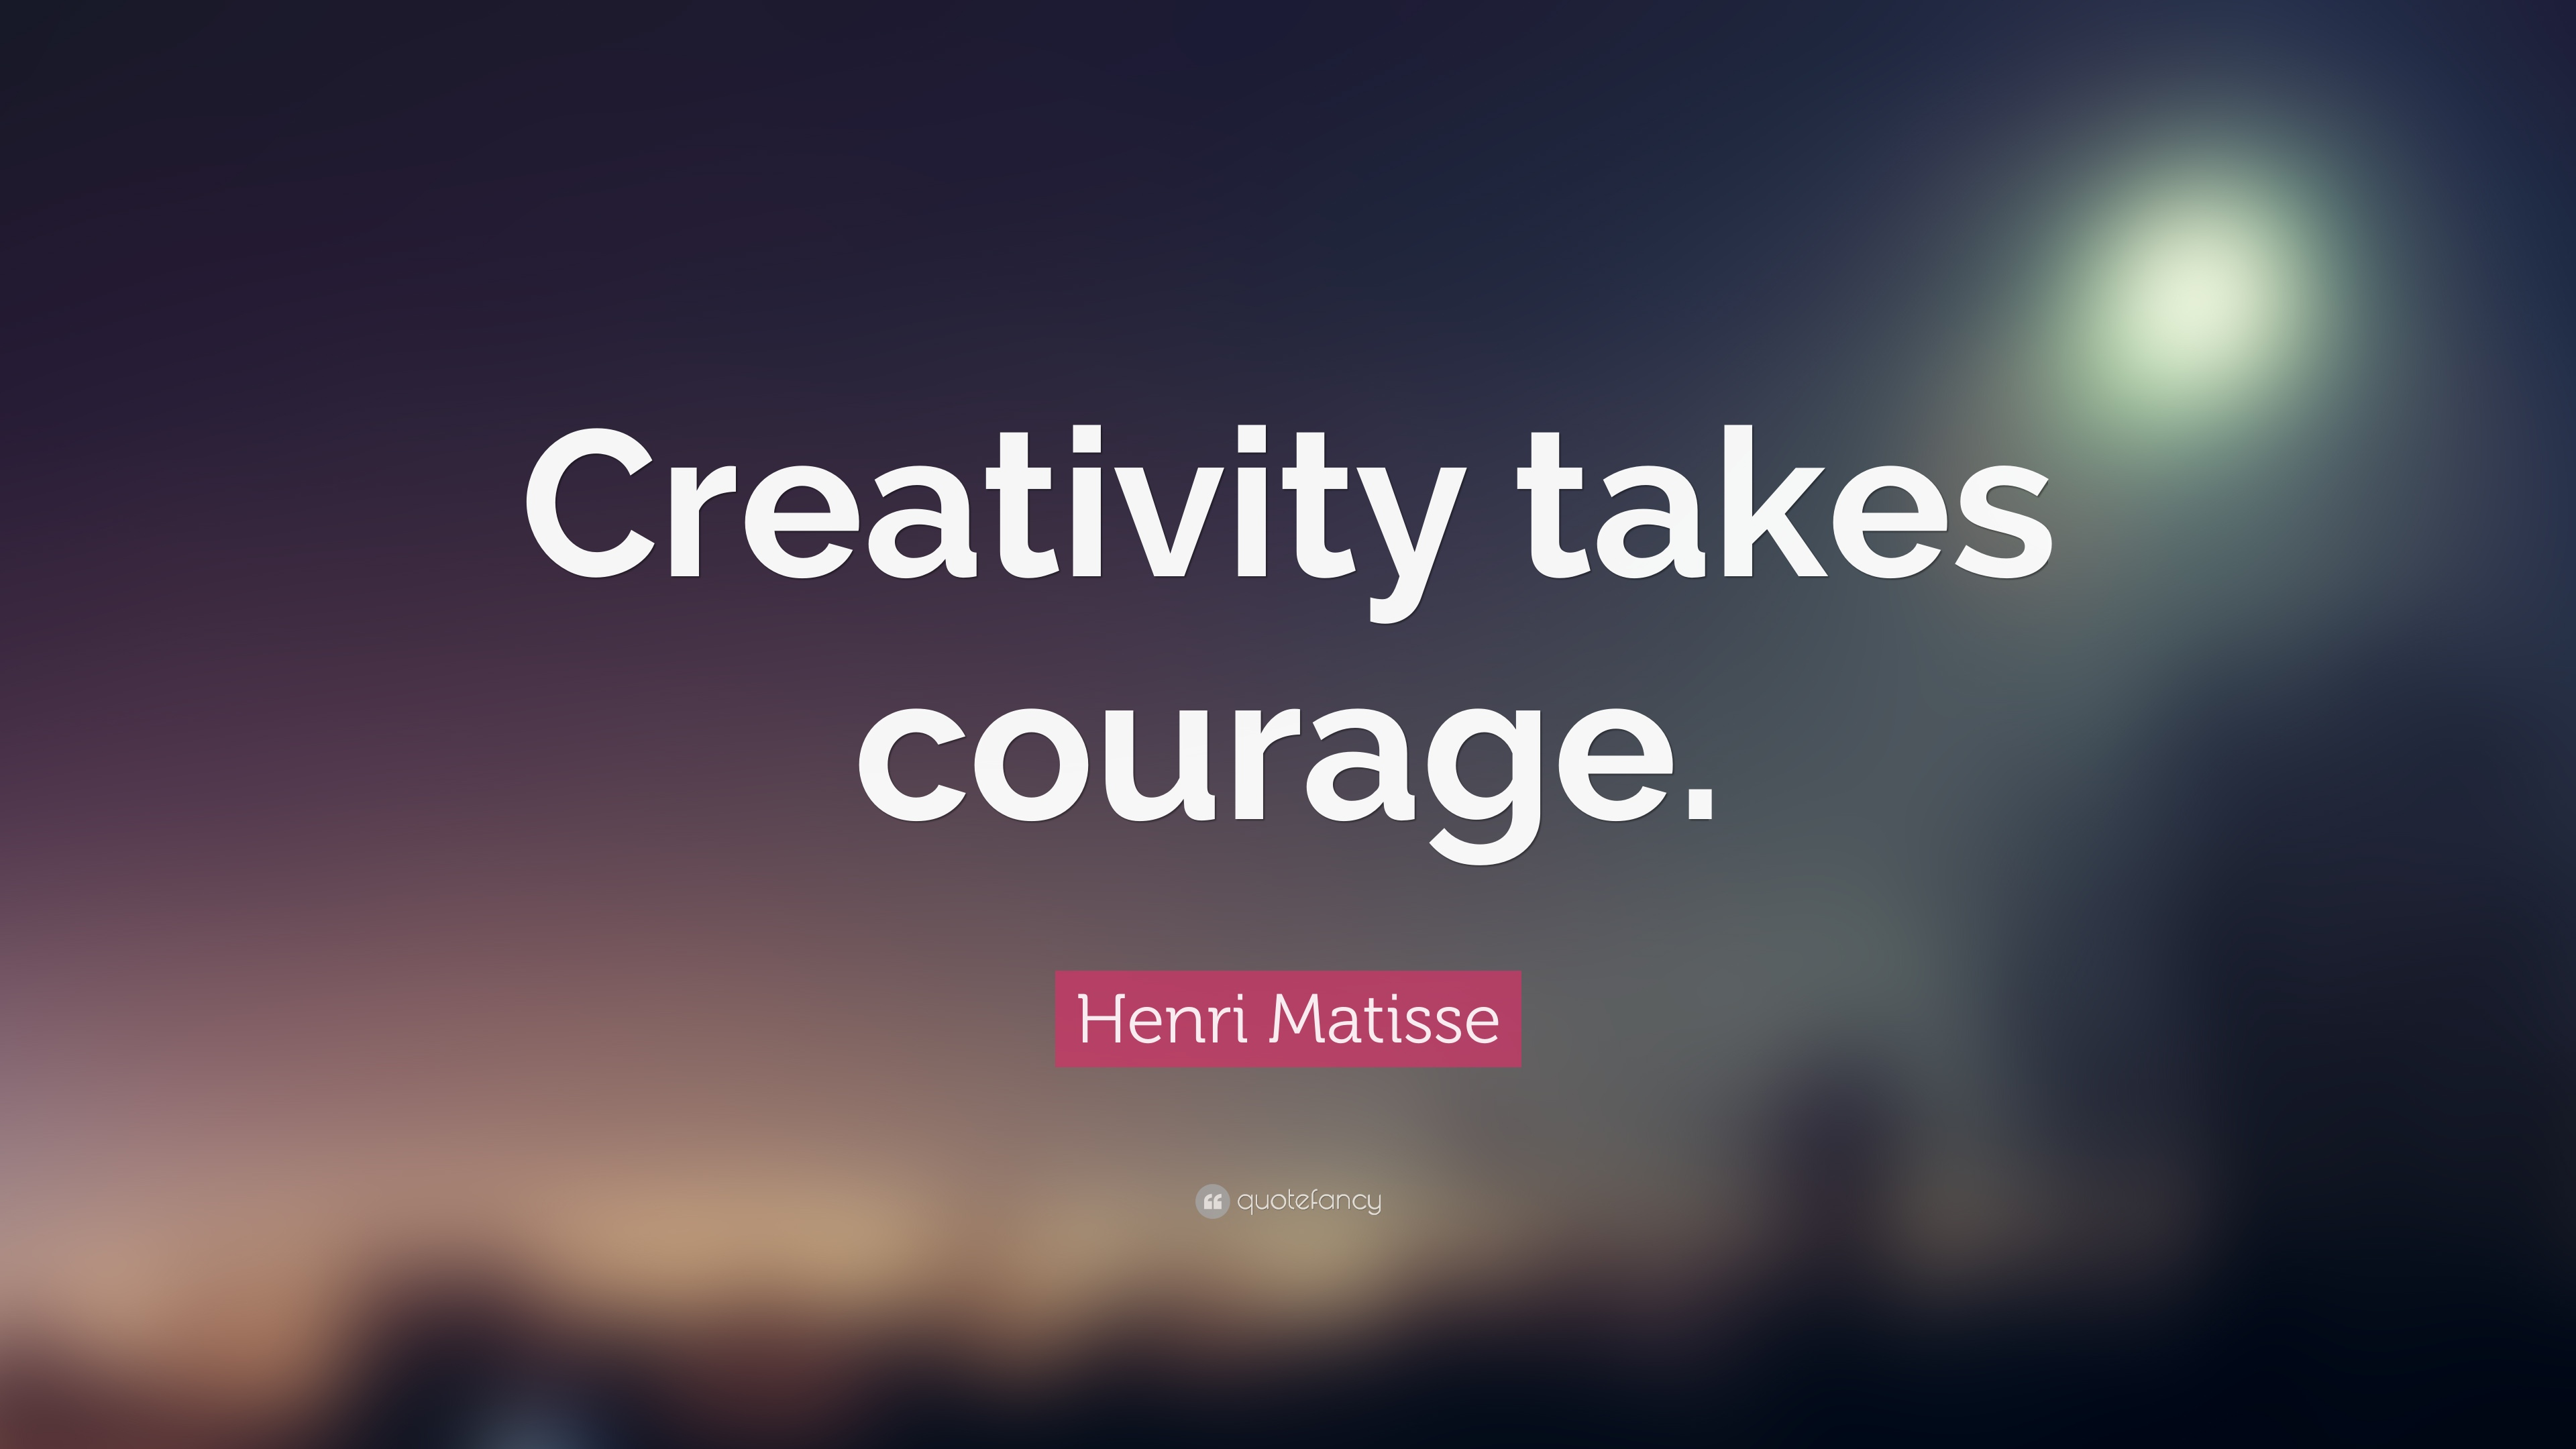 Creativity Quotes Wallpaper | www.pixshark.com - Images ...